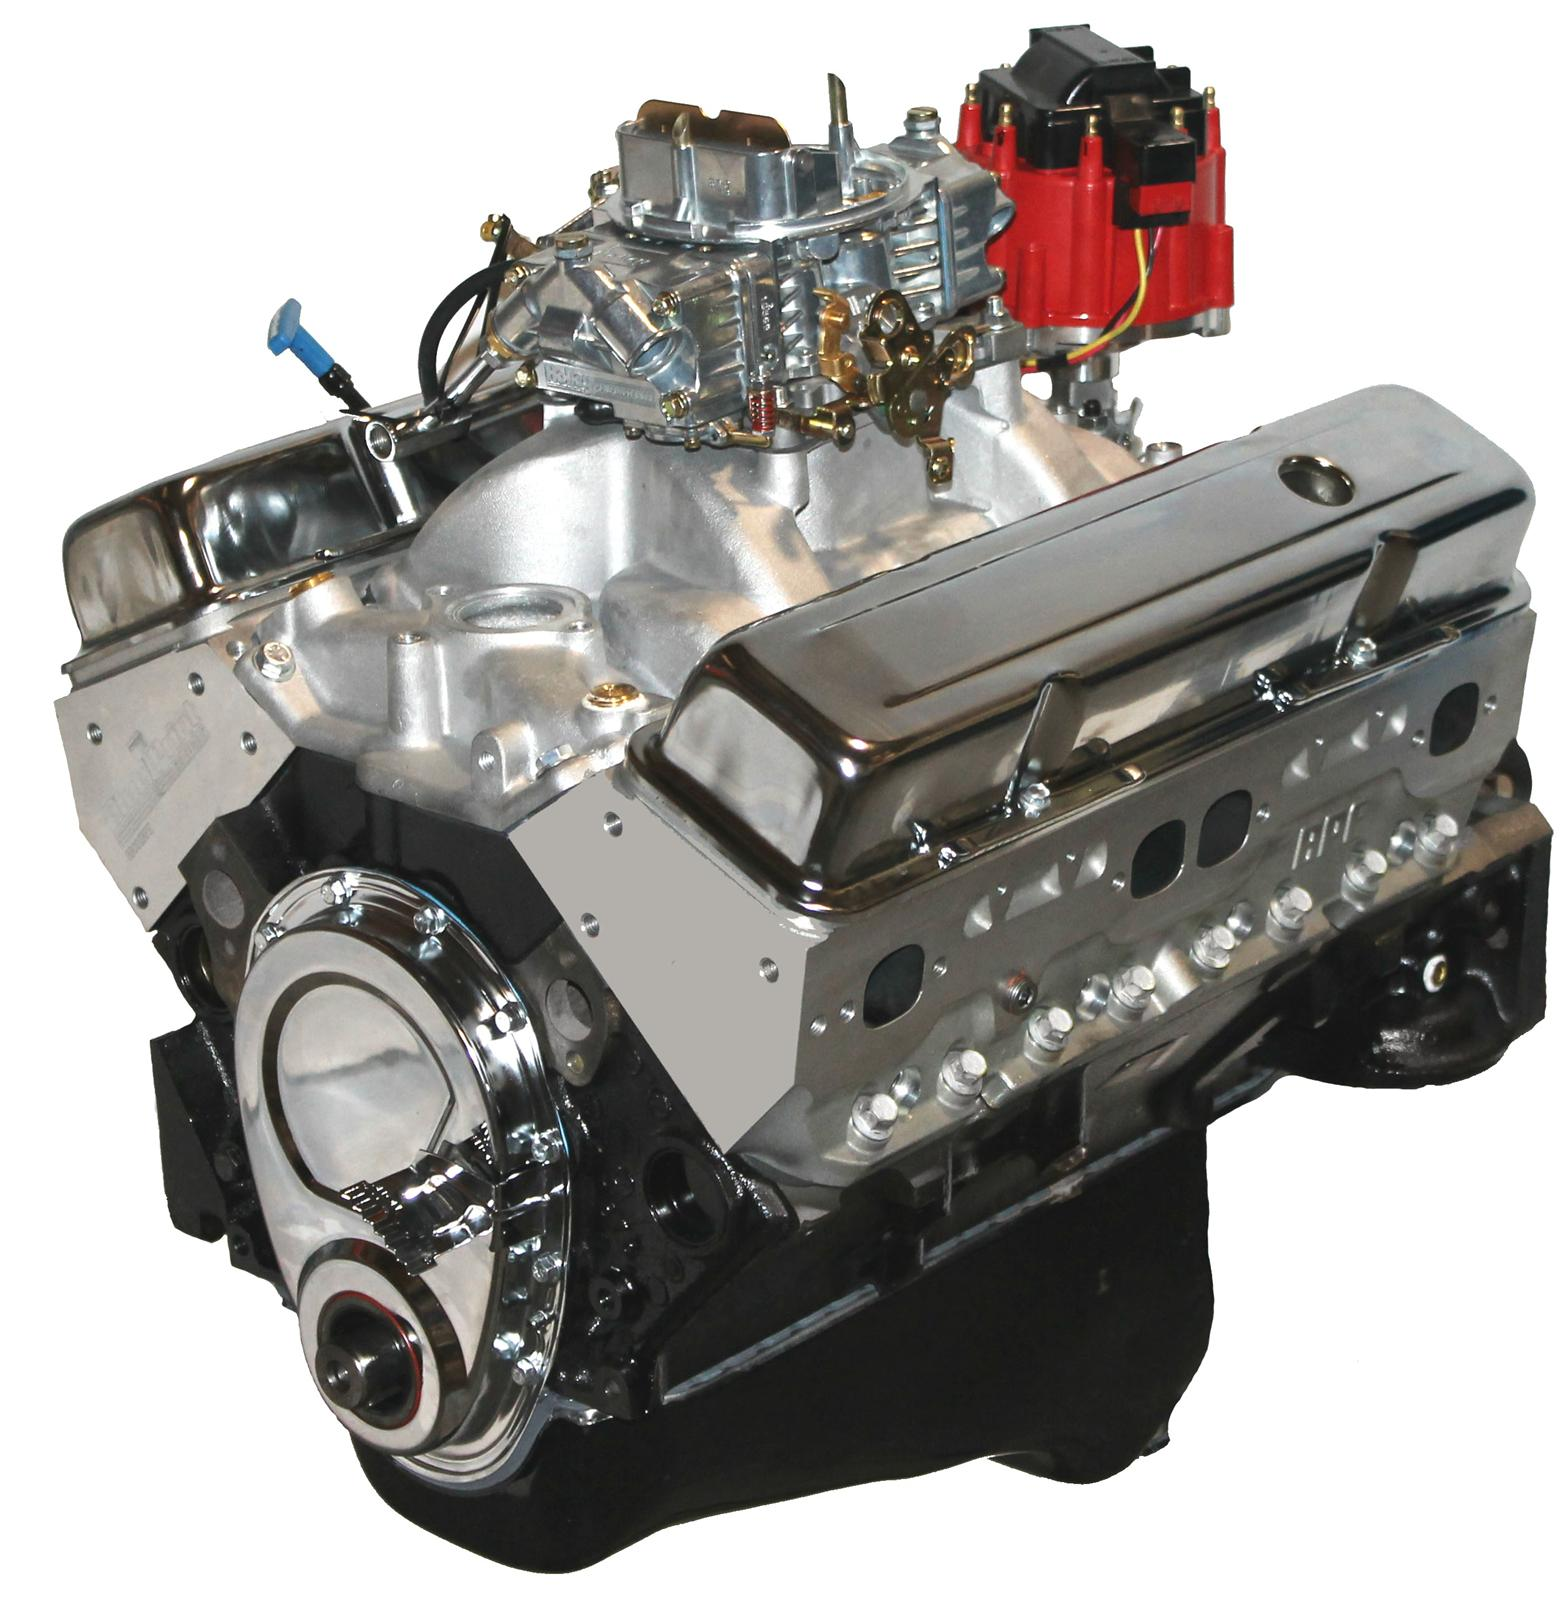 hight resolution of blueprint engines gm 383 c i d 430 hp stroker base dressed long blocks w aluminum heads bp38313ctc1 free shipping on orders over 99 at summit racing